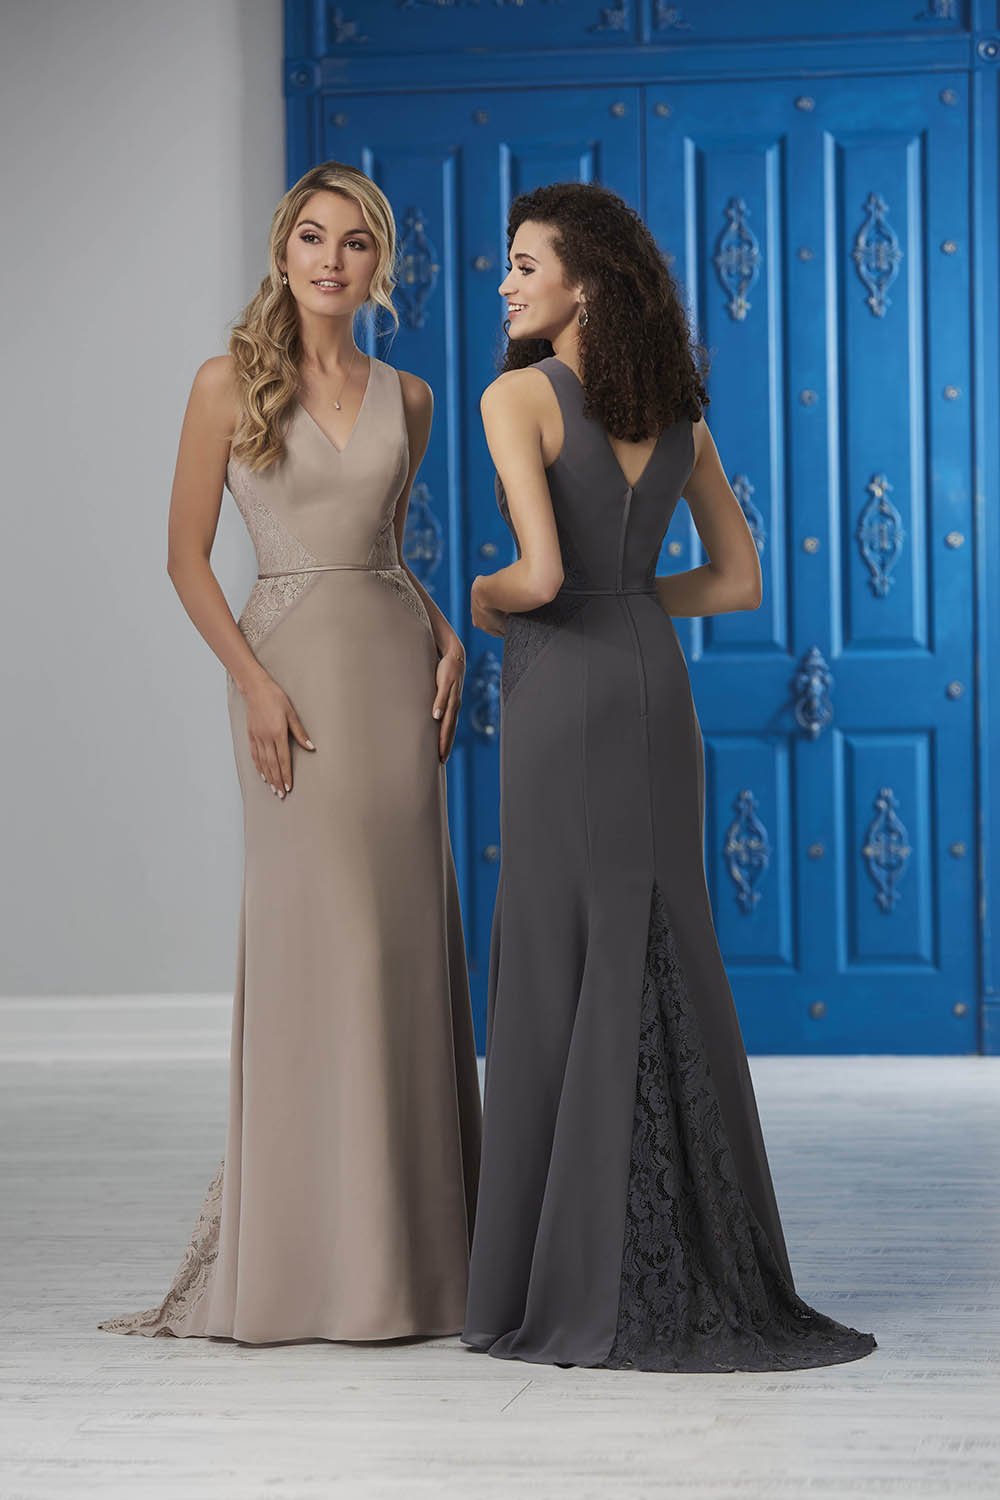 bridesmaid-dresses-jacquelin-bridals-canada-26203